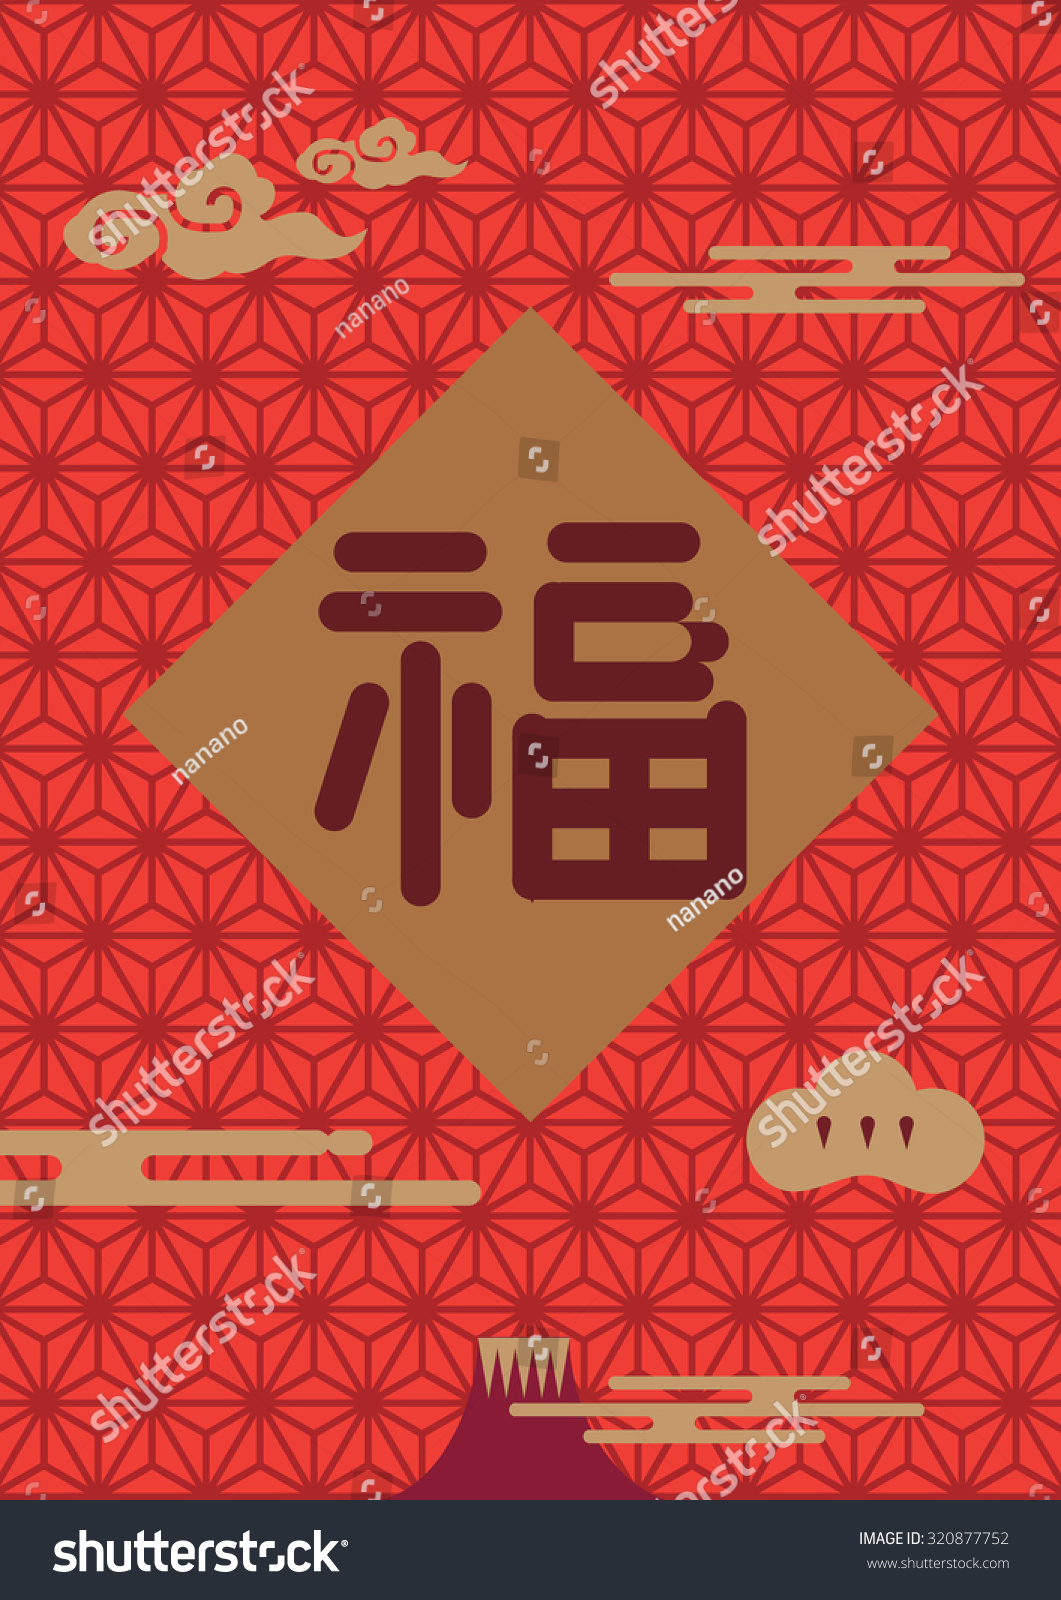 Chinese new year greetings 2016 year stock vector 320877752 chinese new year greetings 2016 year of monkey chinese element blessing in english kristyandbryce Choice Image